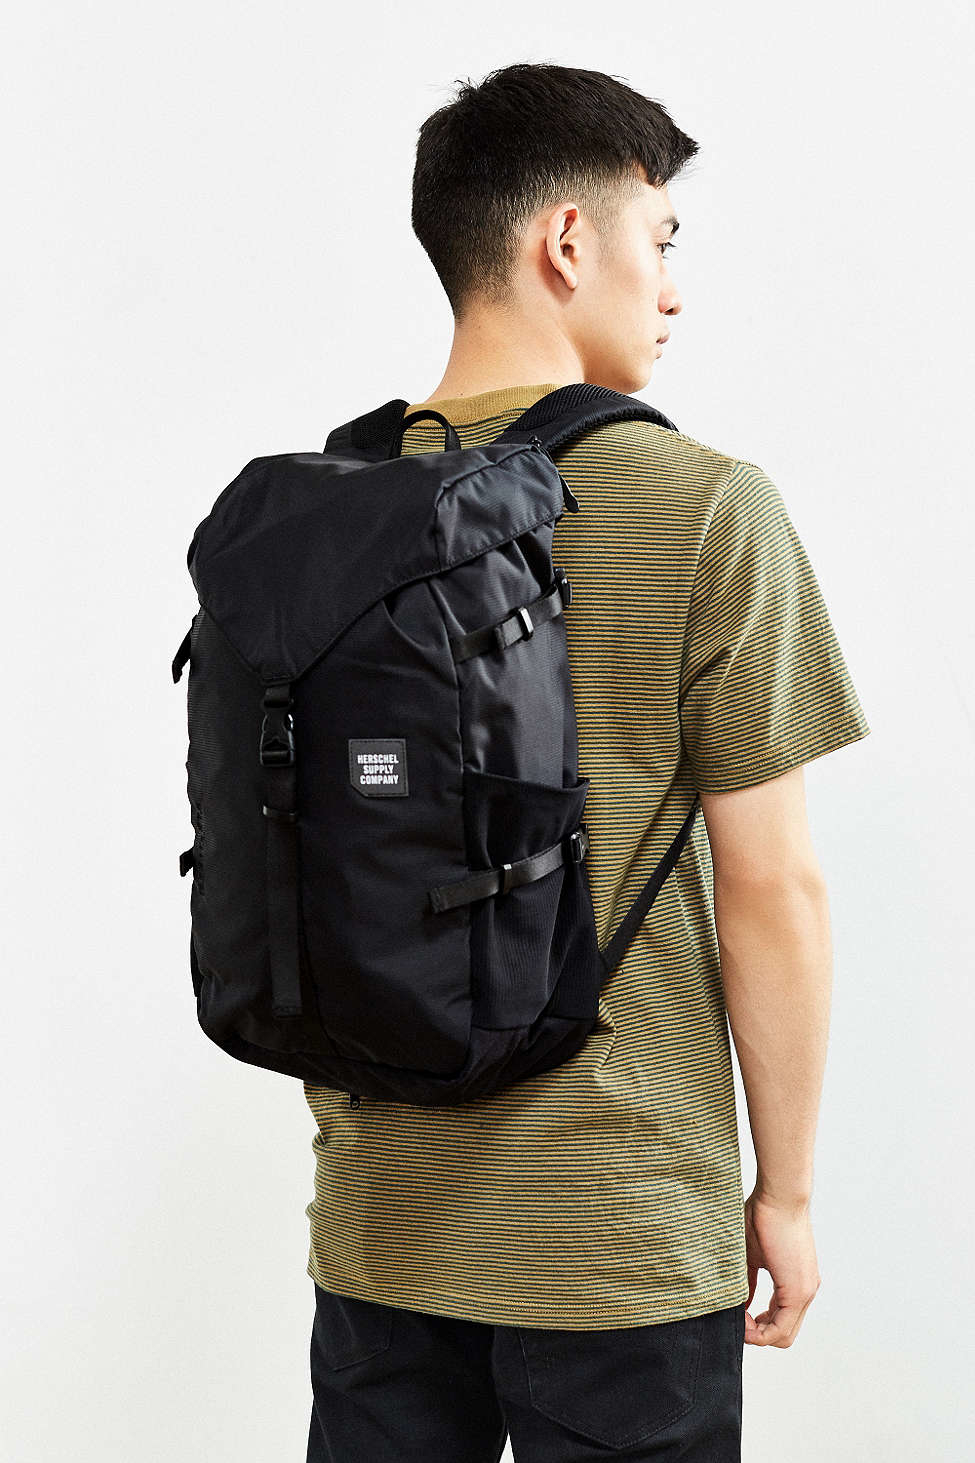 Lyst - Herschel Supply Co. Trail Barlow Backpack in Black for Men dfac788540e85